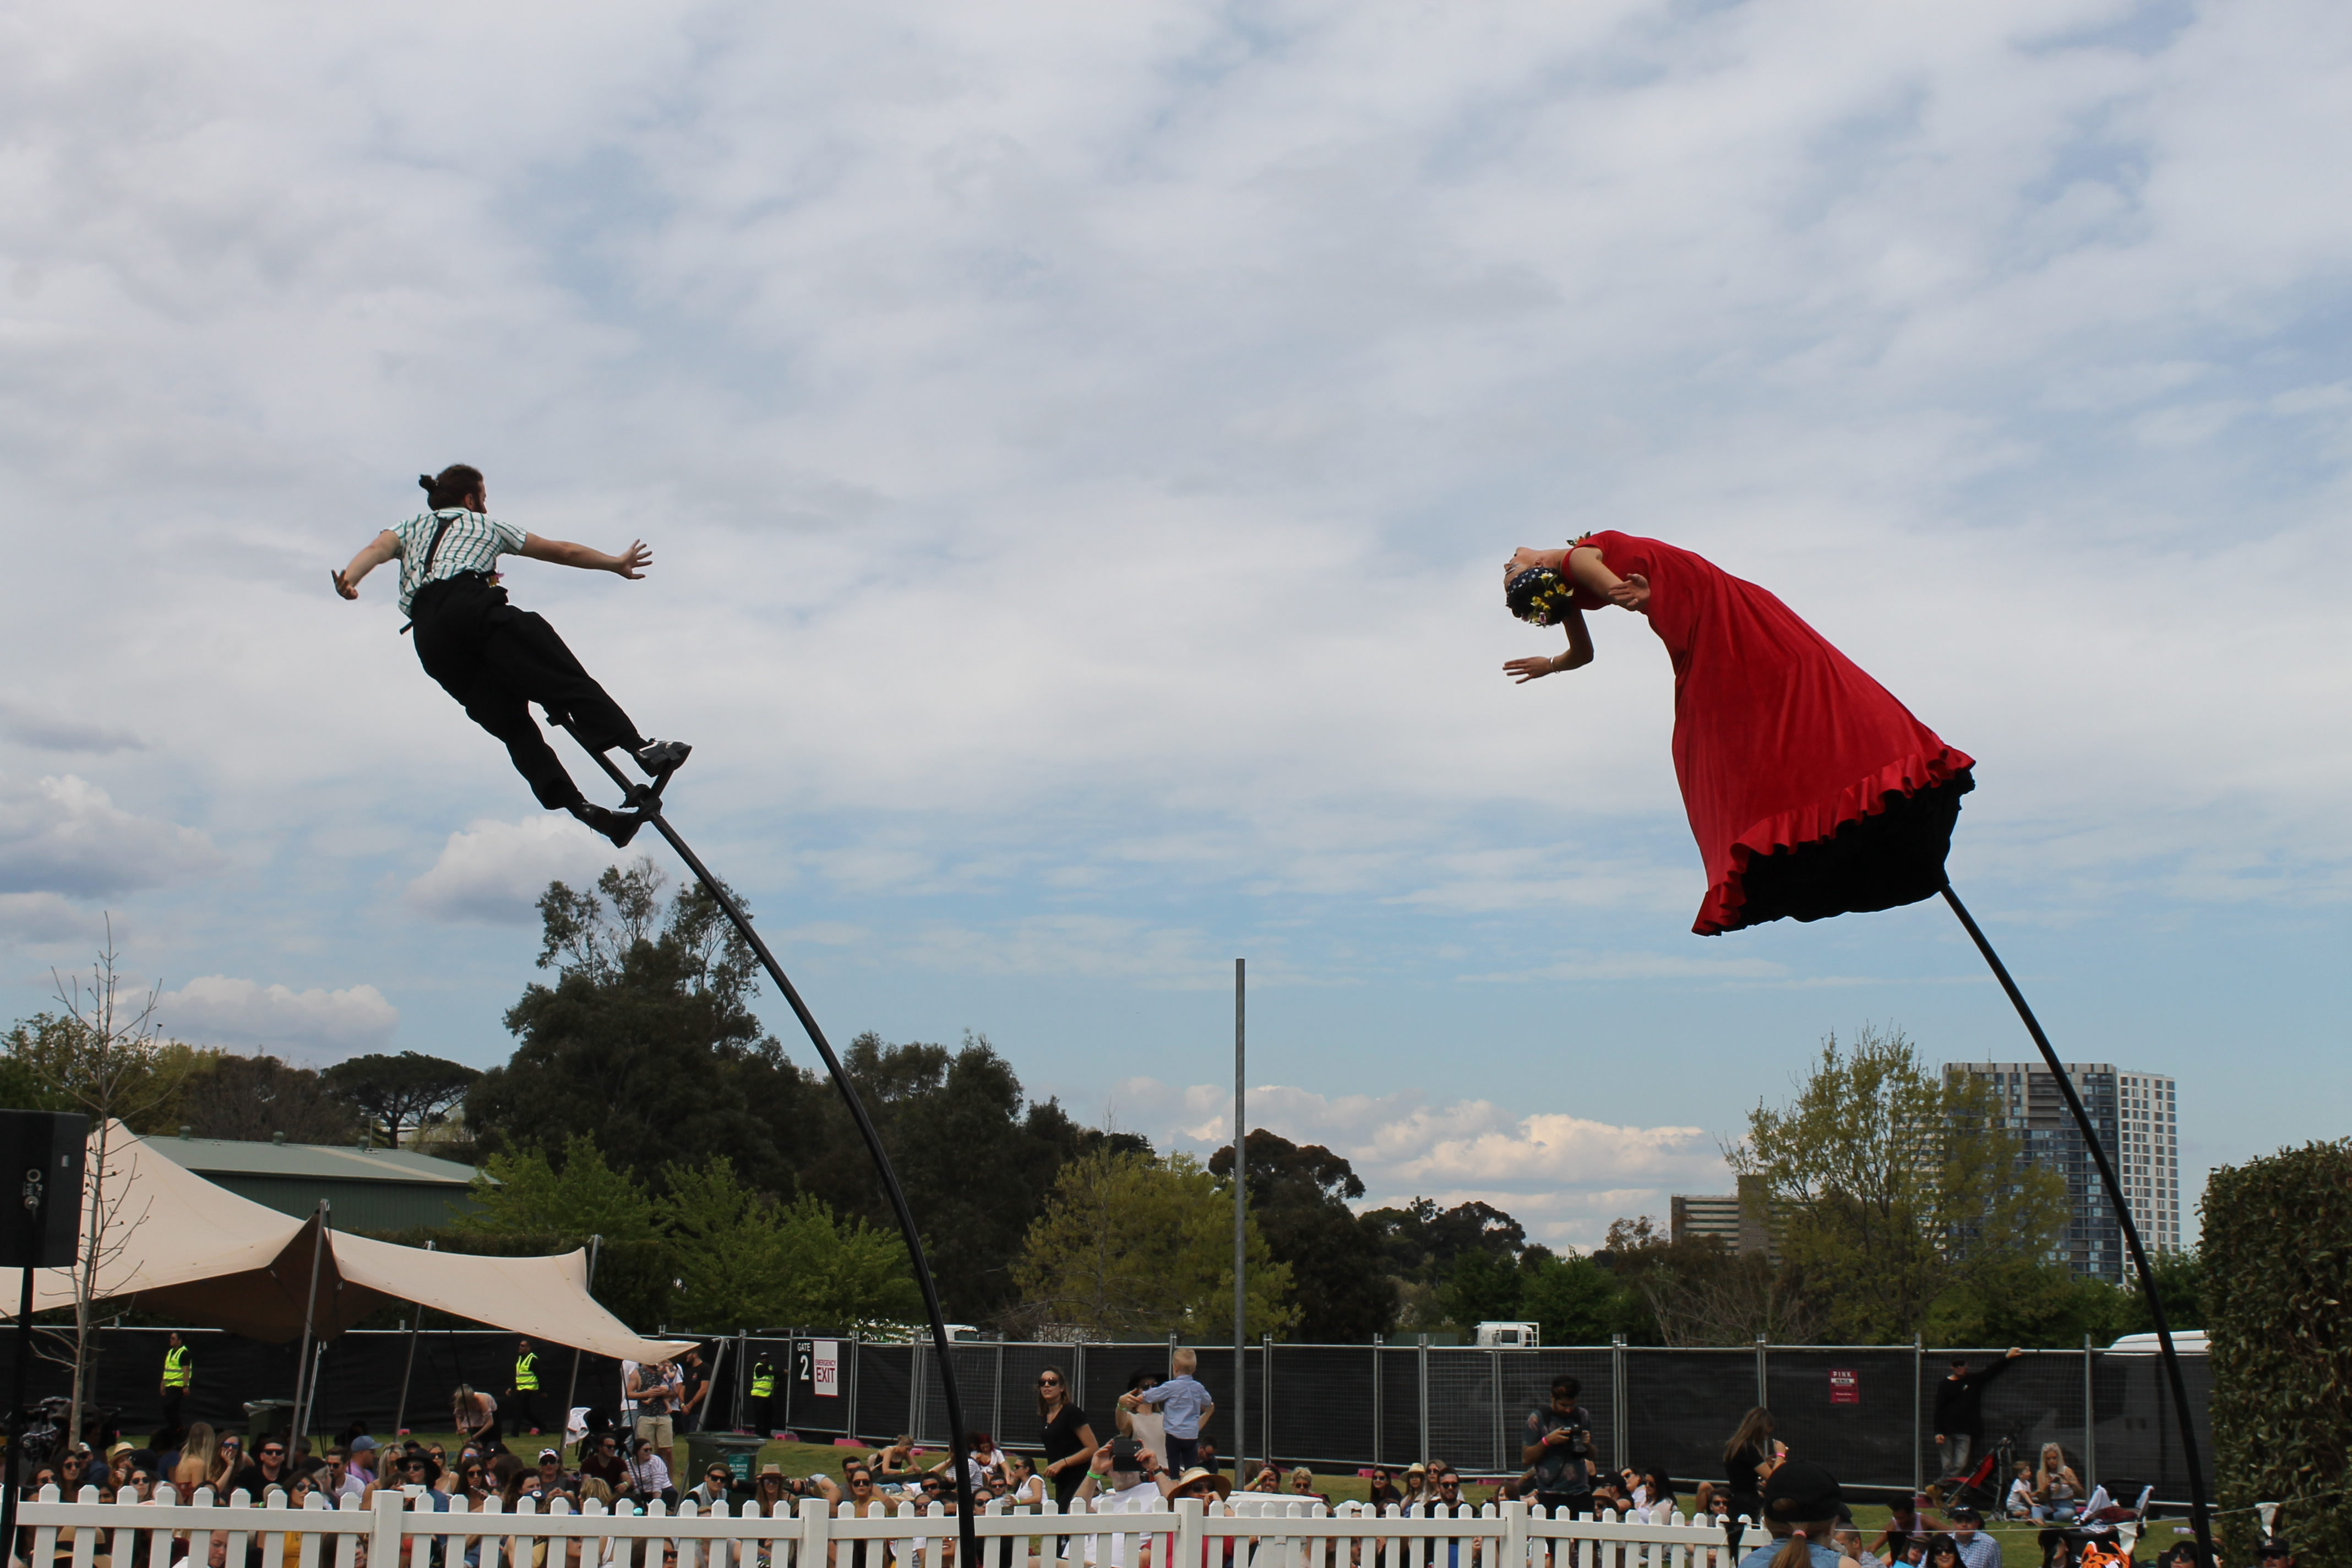 Performers on stilts at Lost Picnic 2018